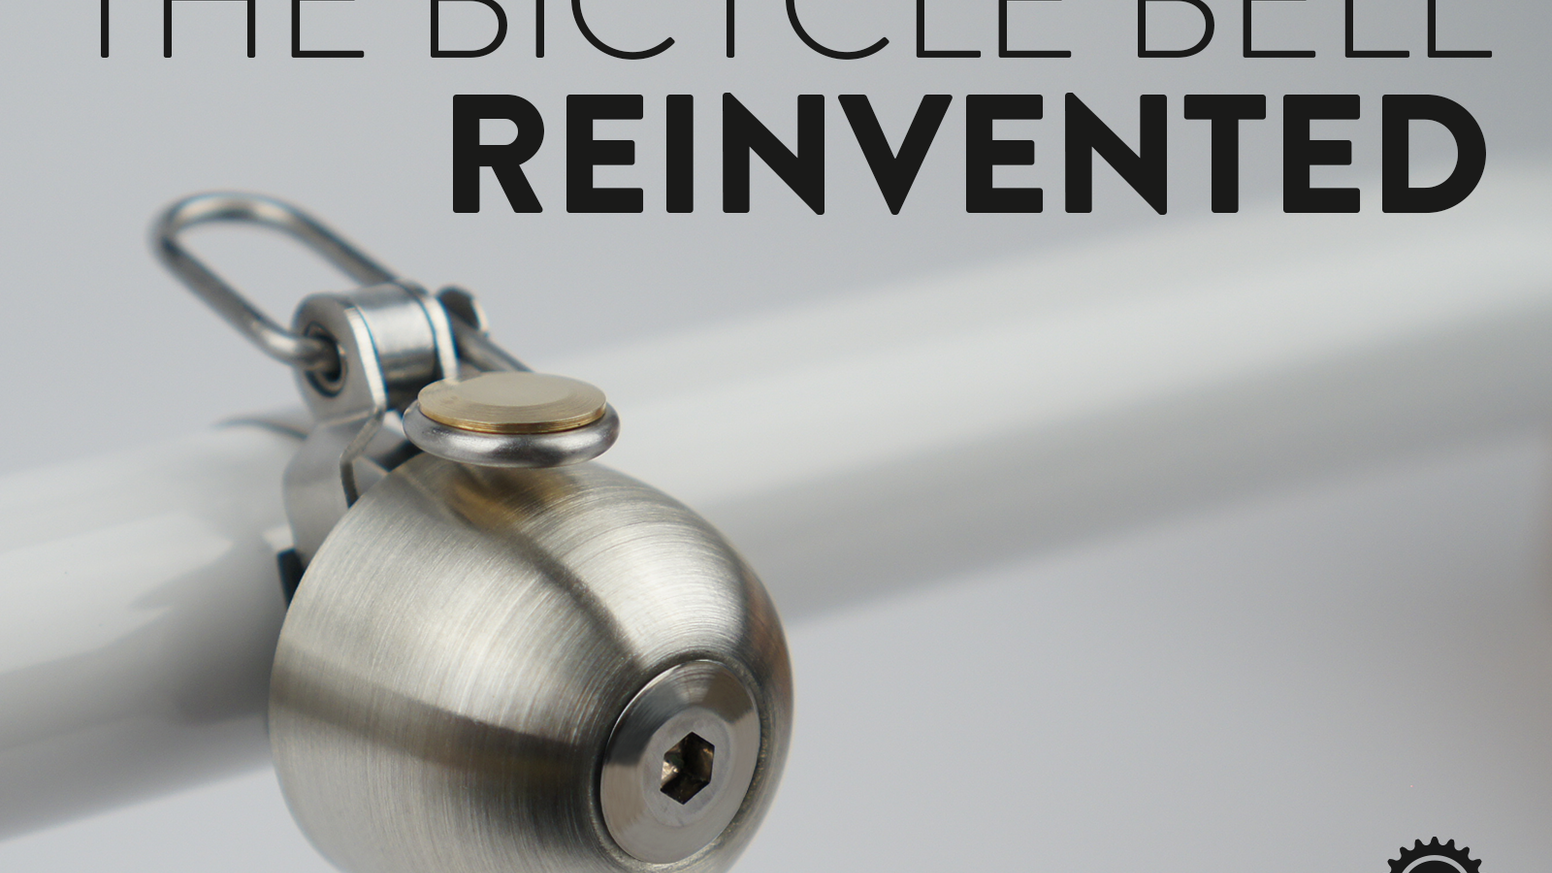 A better bicycle bell, made in the USA  by Spurcycle